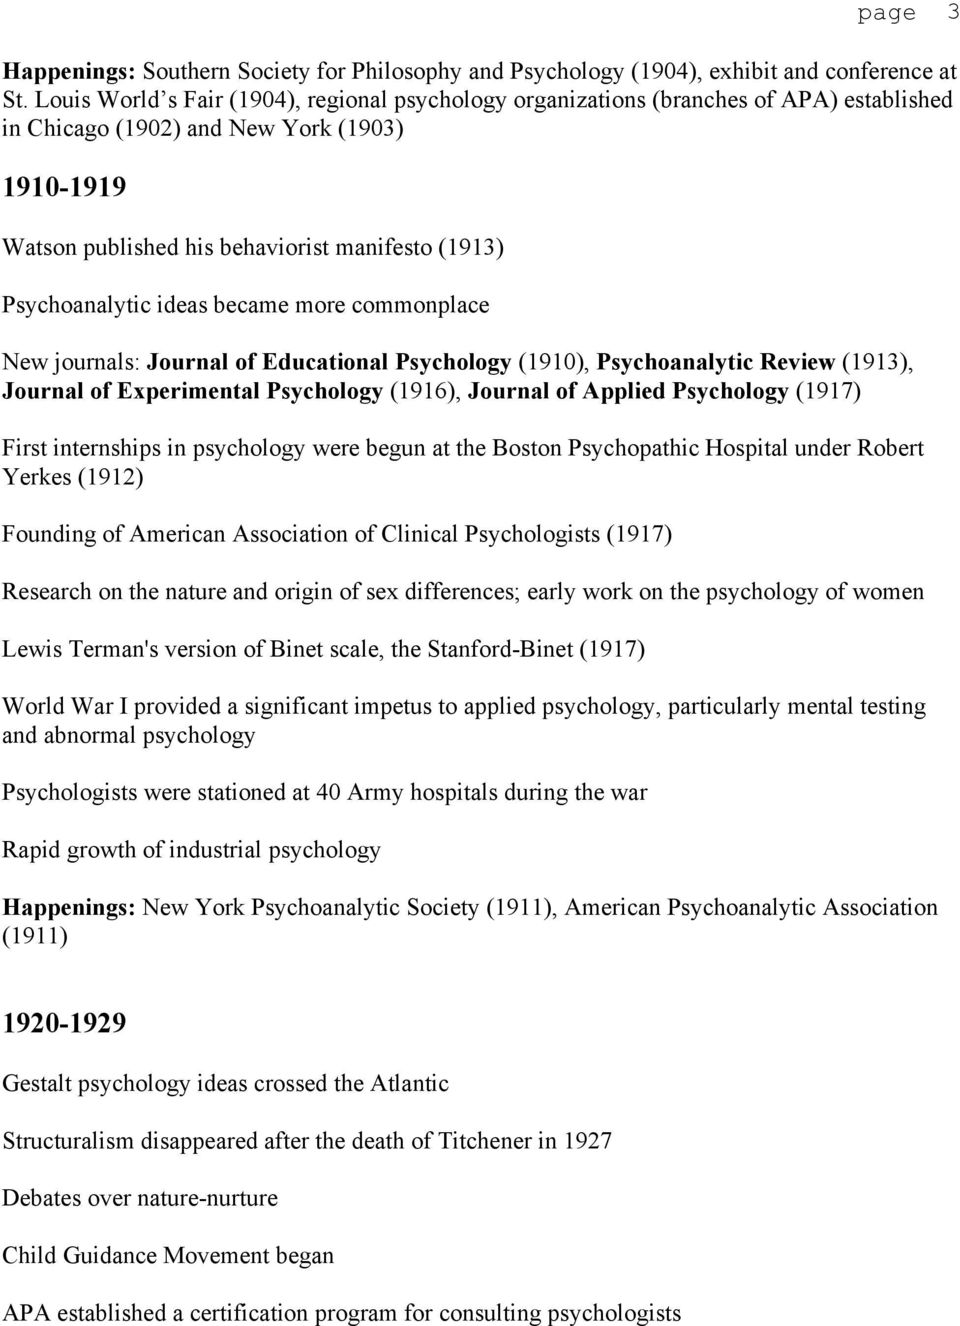 Psychoanalytic ideas became more commonplace New journals: Journal of Educational Psychology (1910), Psychoanalytic Review (1913), Journal of Experimental Psychology (1916), Journal of Applied